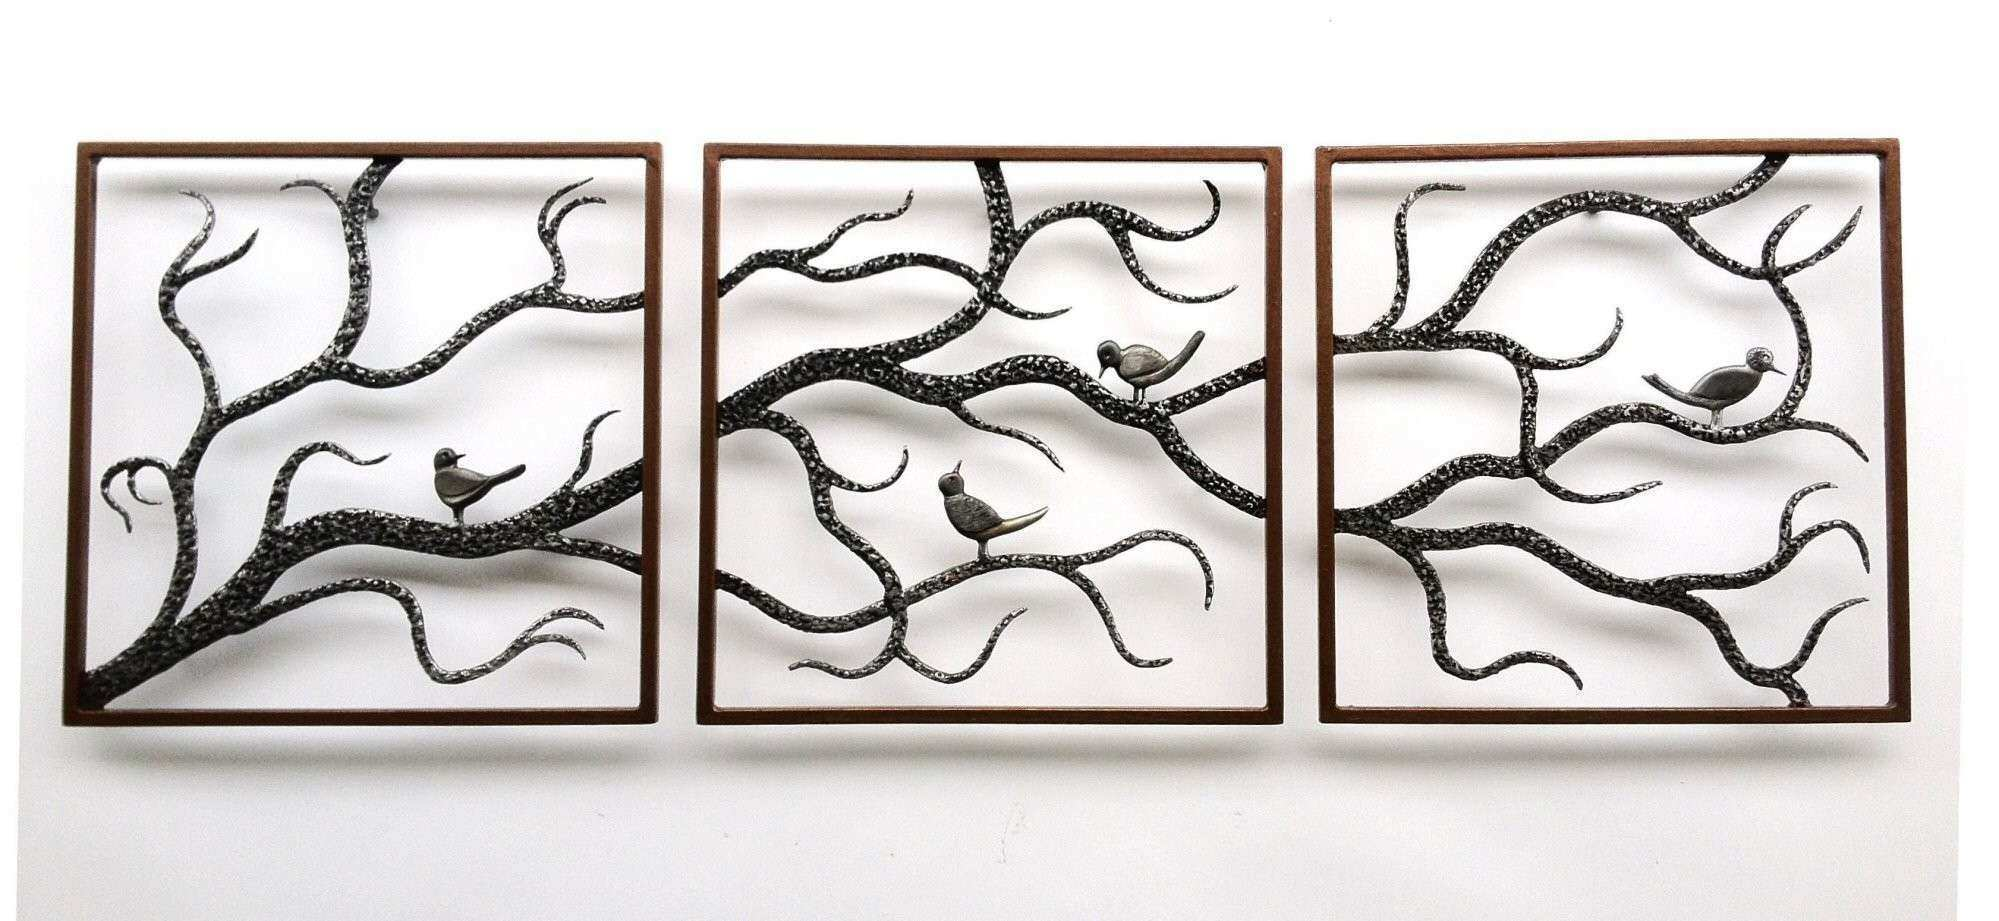 Metal Wall Decor Luxury Friendship Tree by Bernard Collin Metal Wall Art